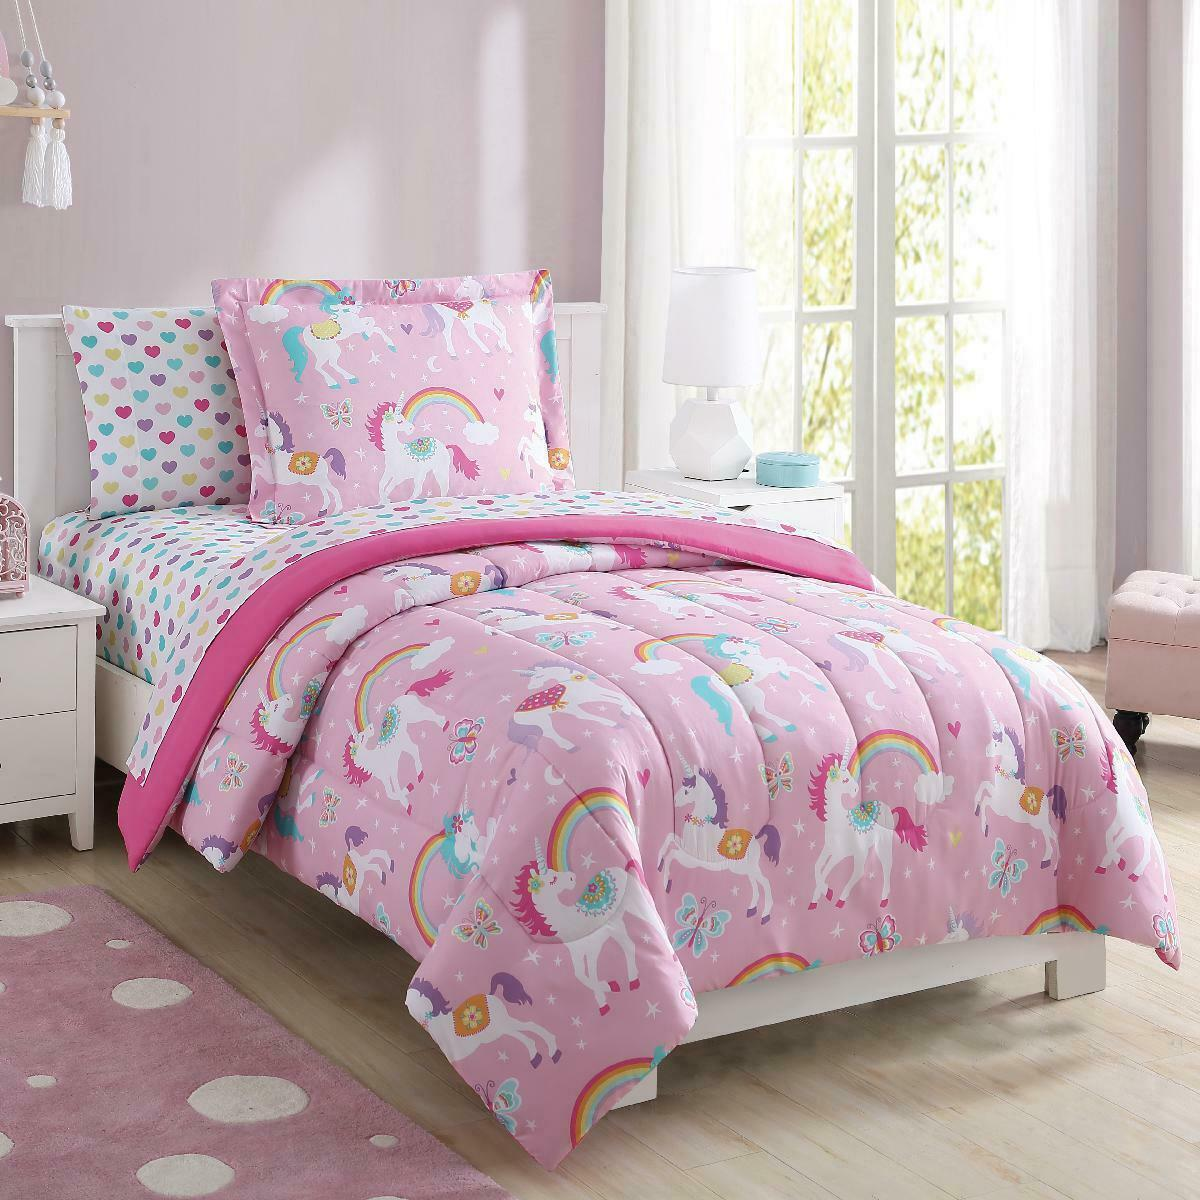 SDIII 3PC Unicorn Bedding Sheet Sets Twin Size Galaxy Bed Sheets with Flat Fitted Sheet for Boys Girls and Teens